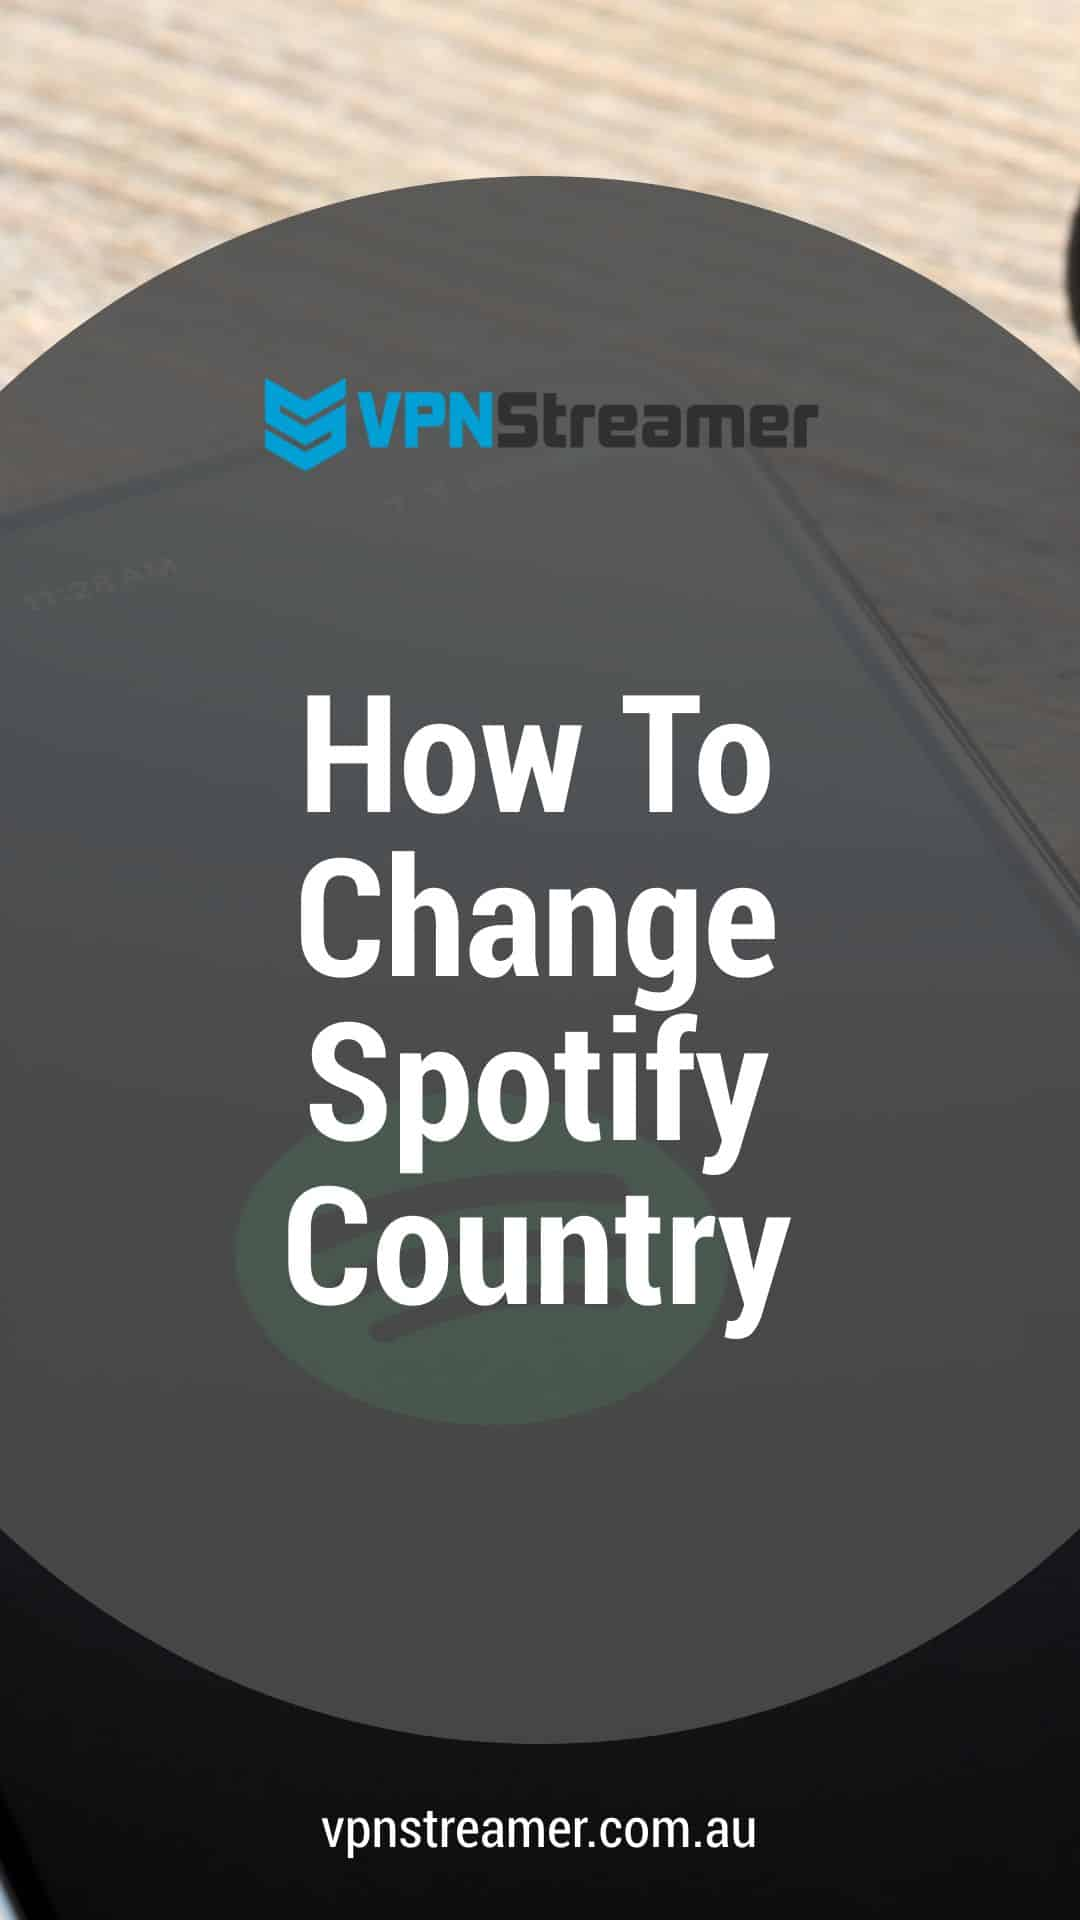 How To Change Spotify Country